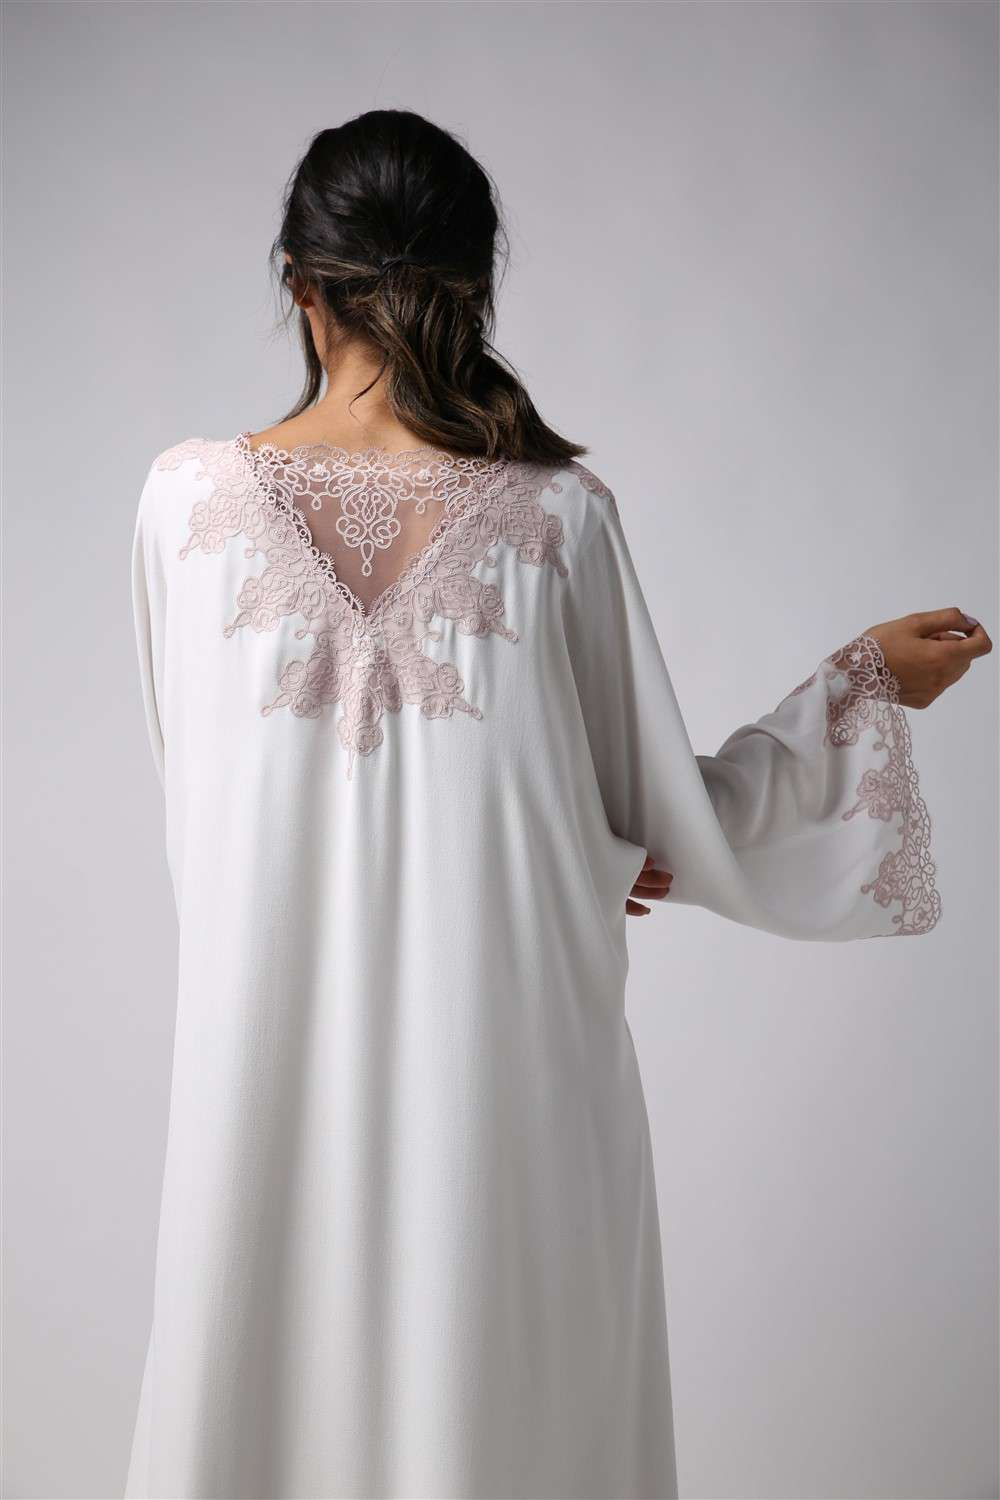 Nightgown - Off White Roja - Powder